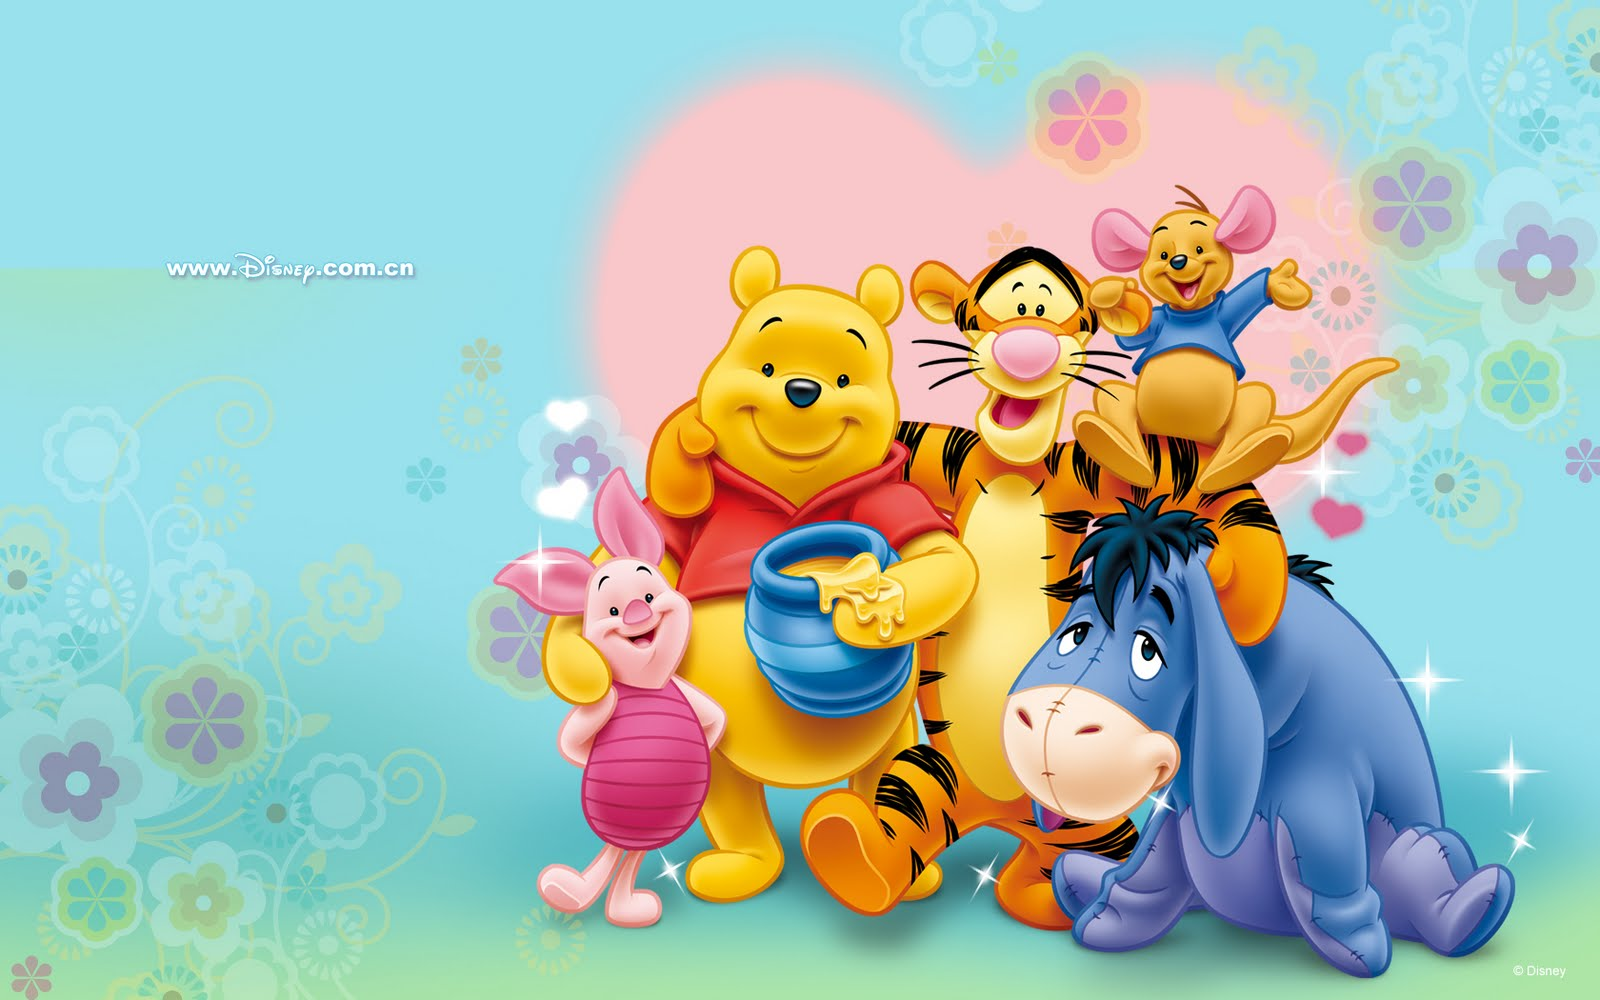 Wallpapers de winnie pooh by disney i 8 imágenes